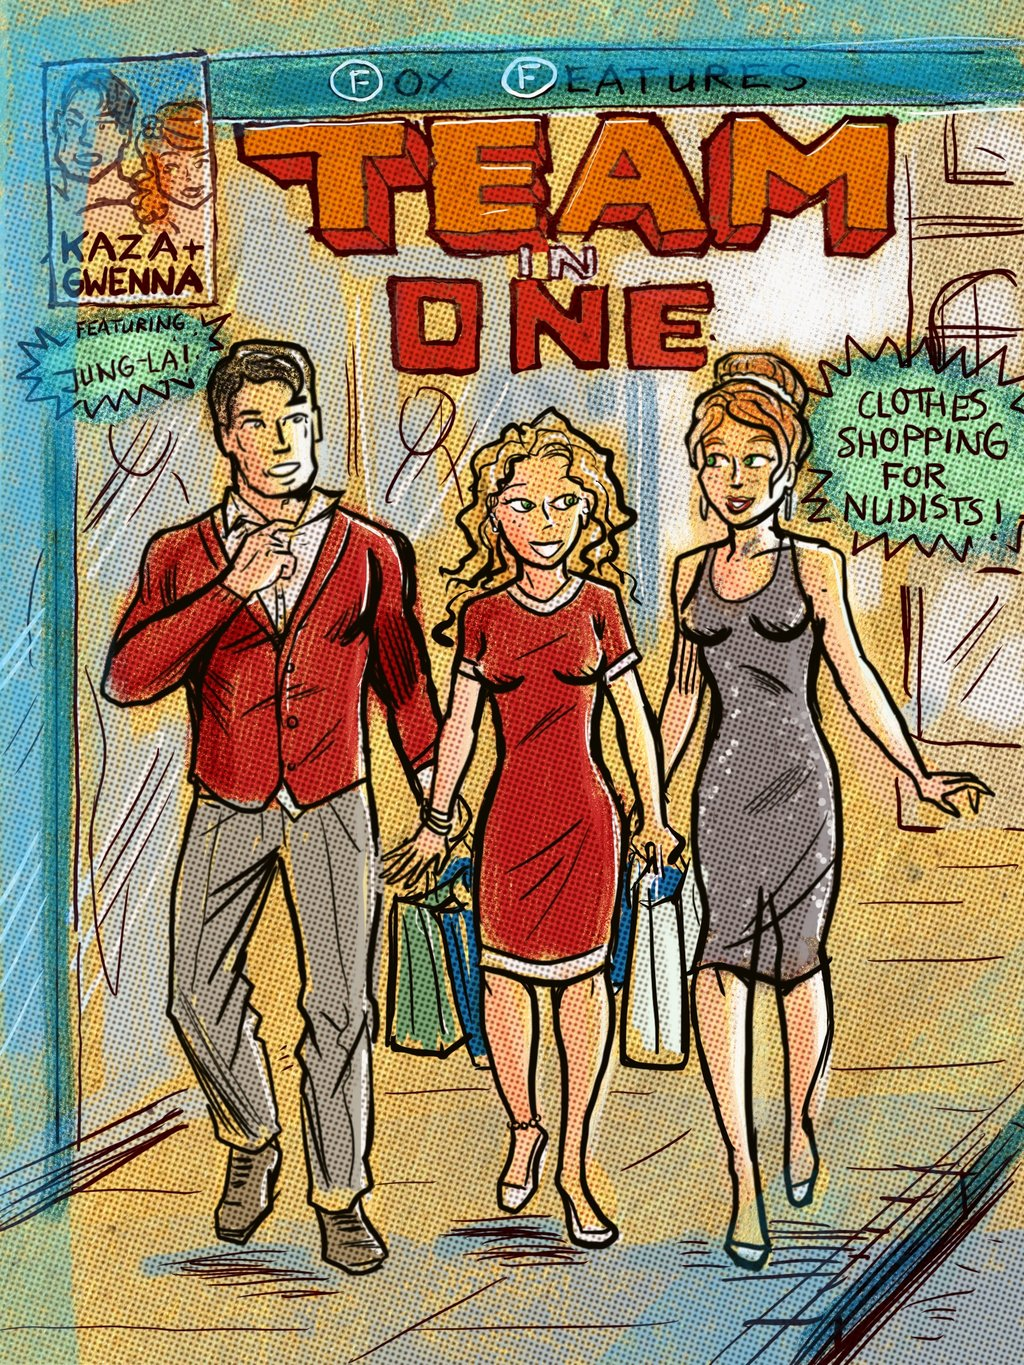 Team-In-One: Kaza and Gwenna and Jung-La